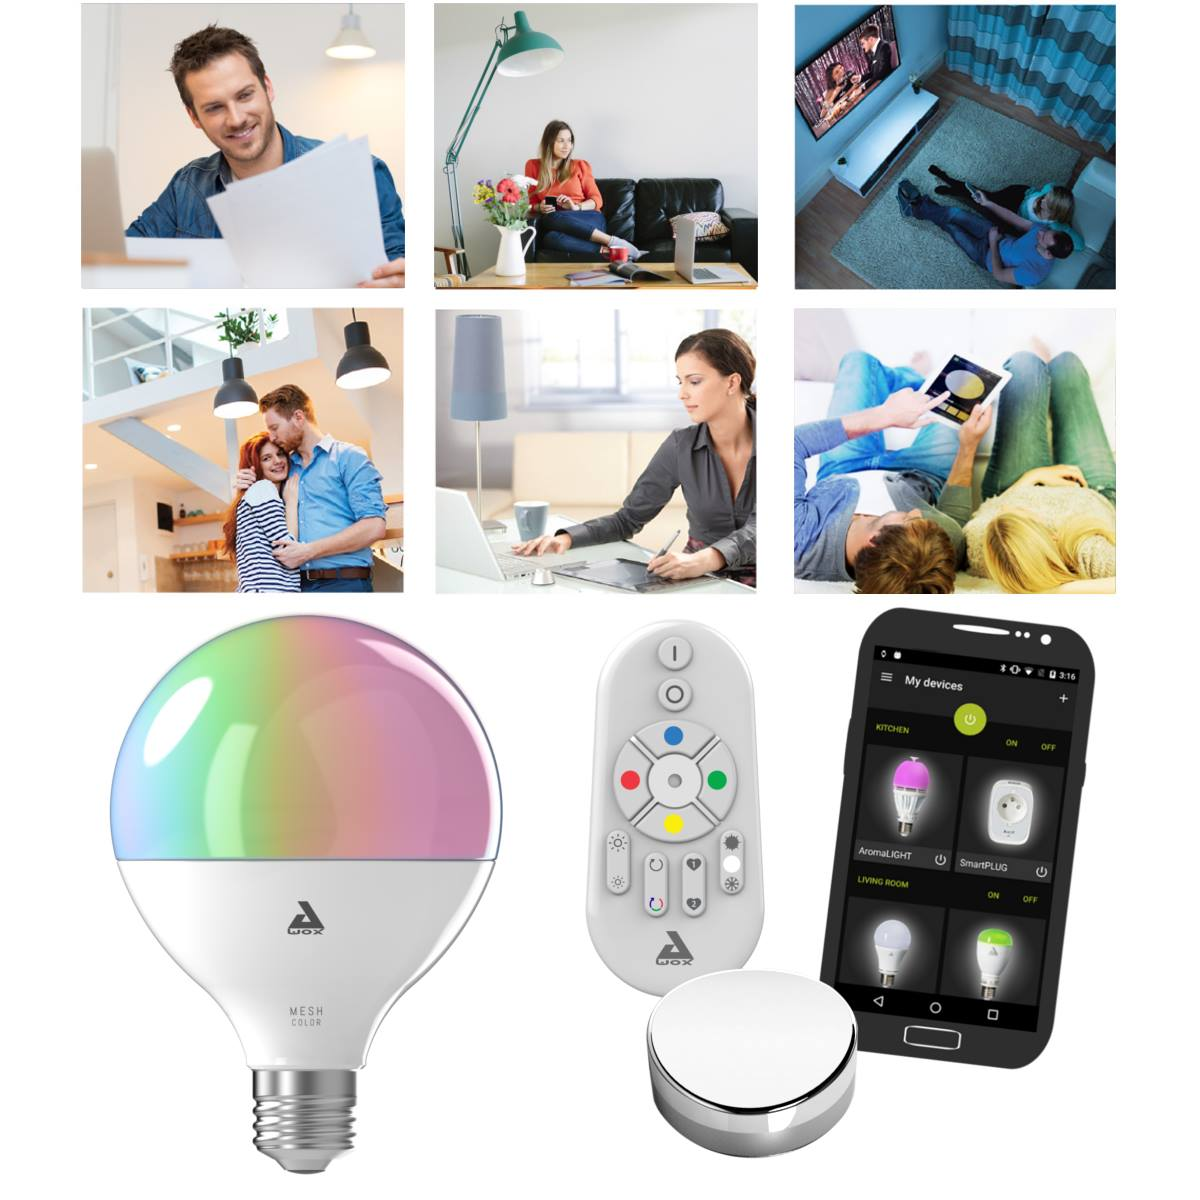 Smartlight mesh color awox - Awox smart control ...